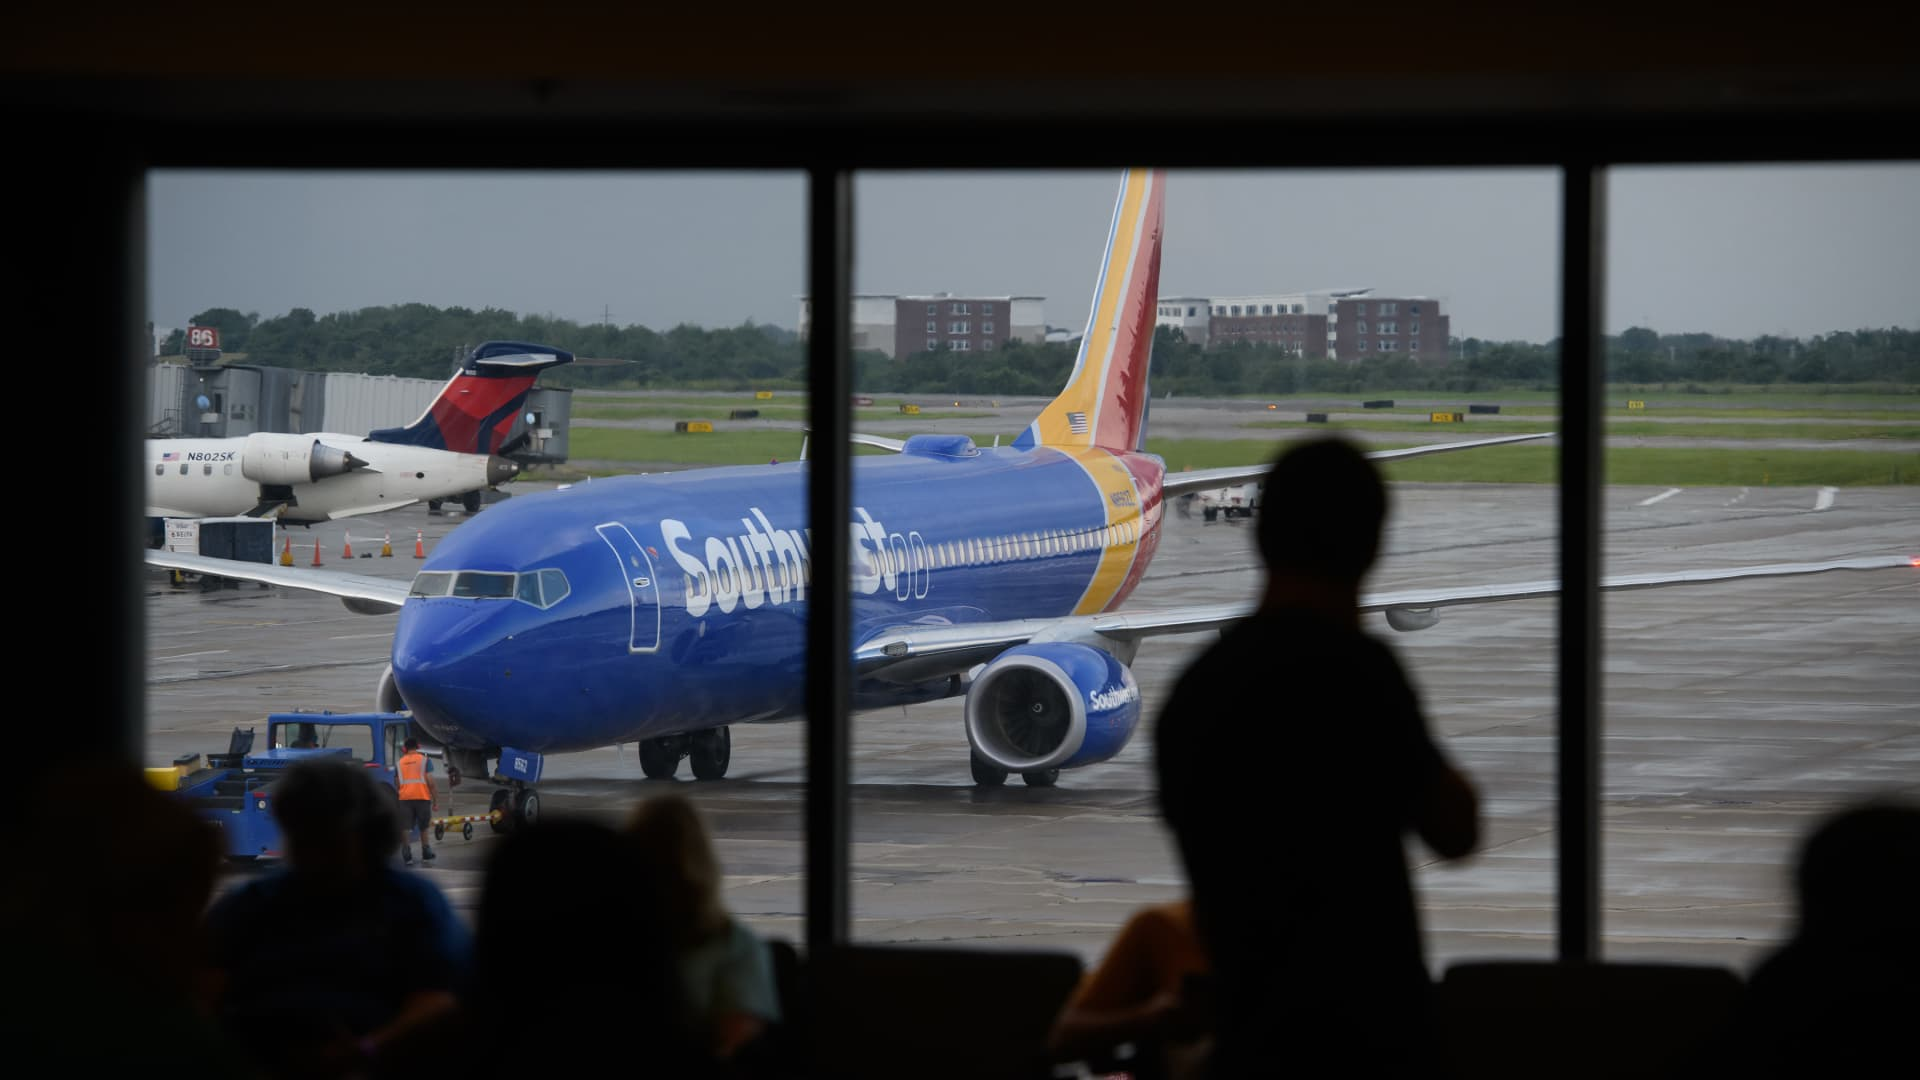 A person watches as a Southwest Airlines Co. plane arrives at a gate at the Pittsburgh International Airport (PIT) in Moon Township, Pennsylvania, U.S., on Tuesday, July 2, 2019.